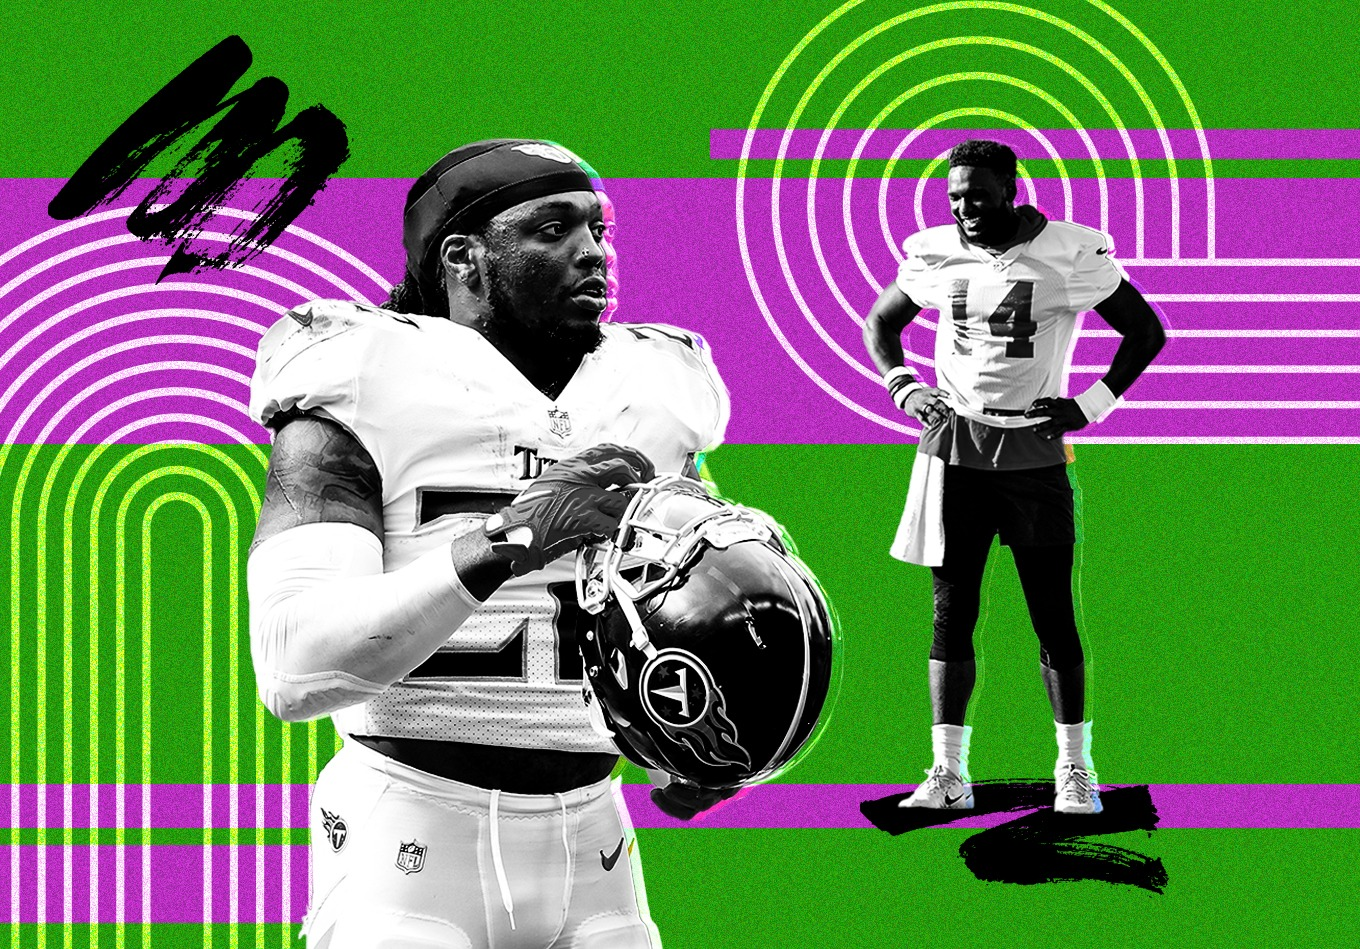 The Yays and Nays: Our Week 3 Fantasy Football Projections, Top Plays and DFS Picks